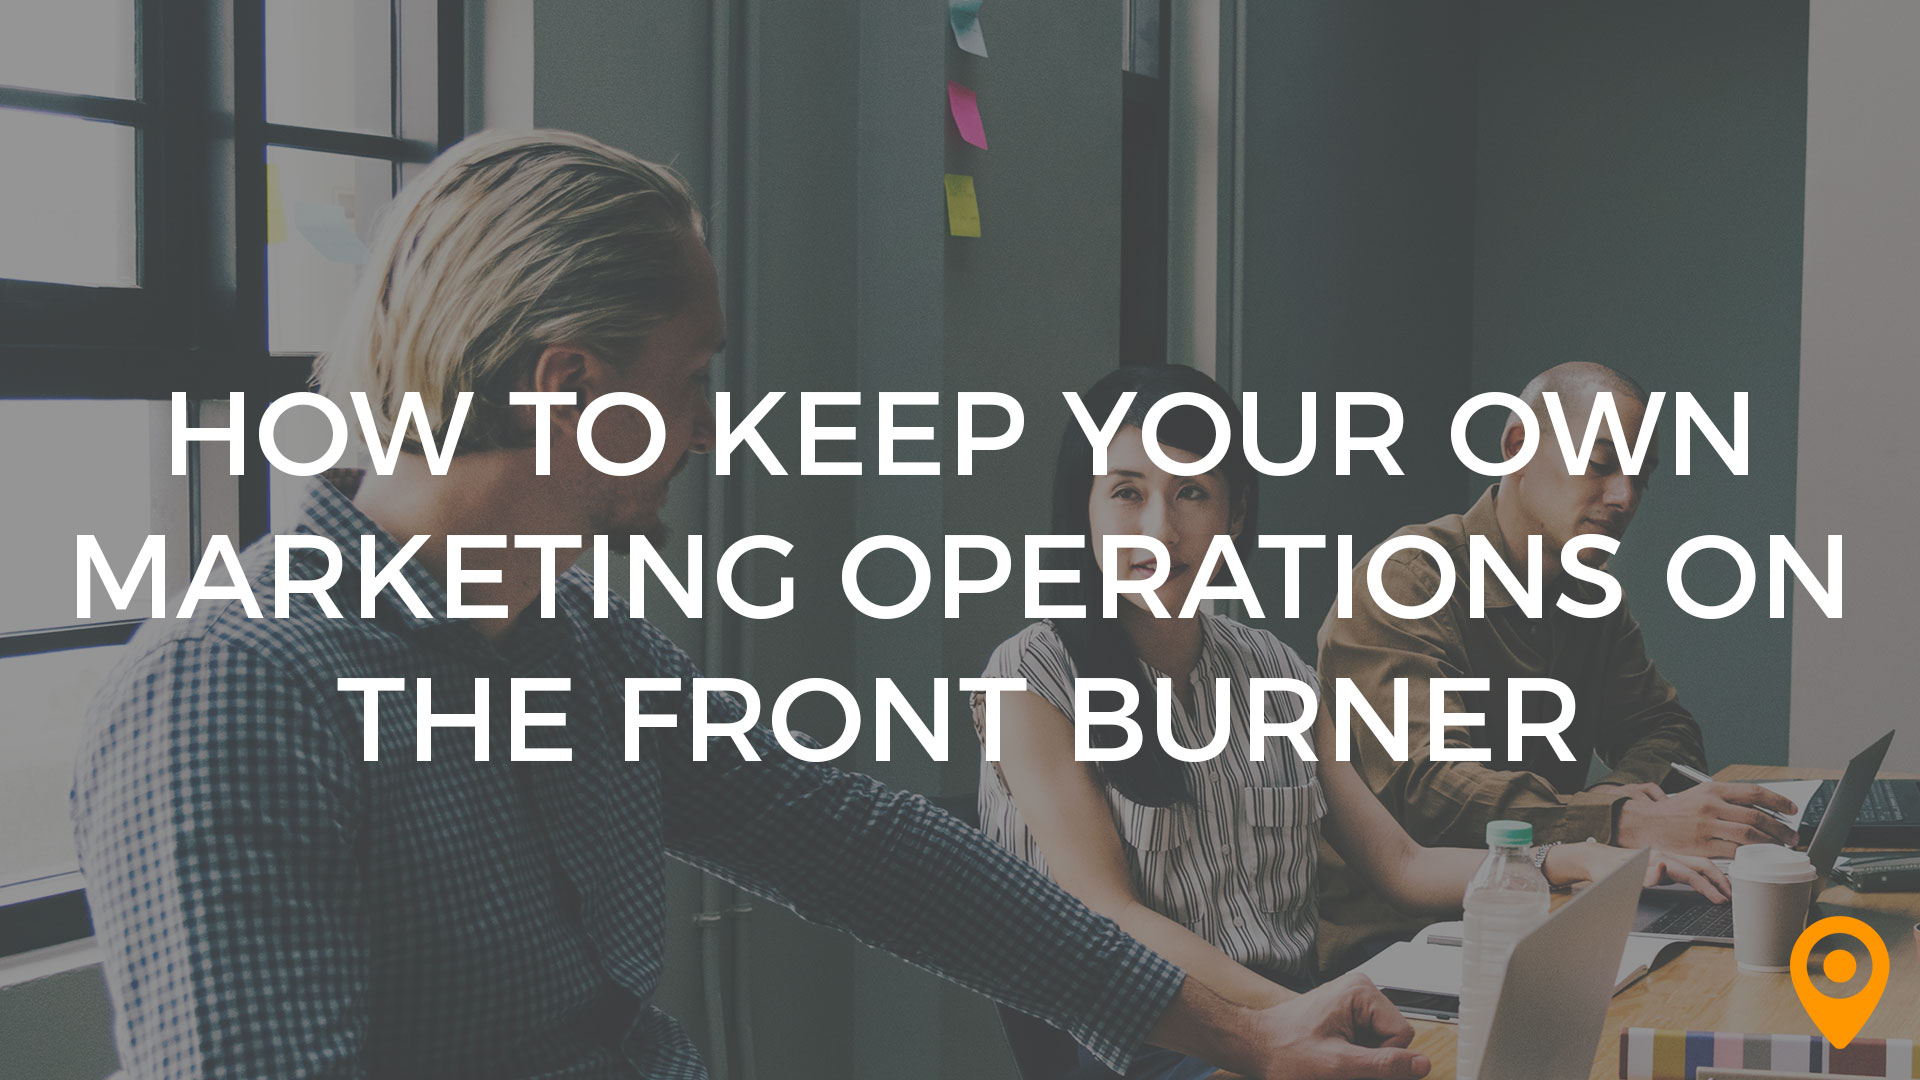 How to Keep Your Own Marketing Operations on the Front Burner